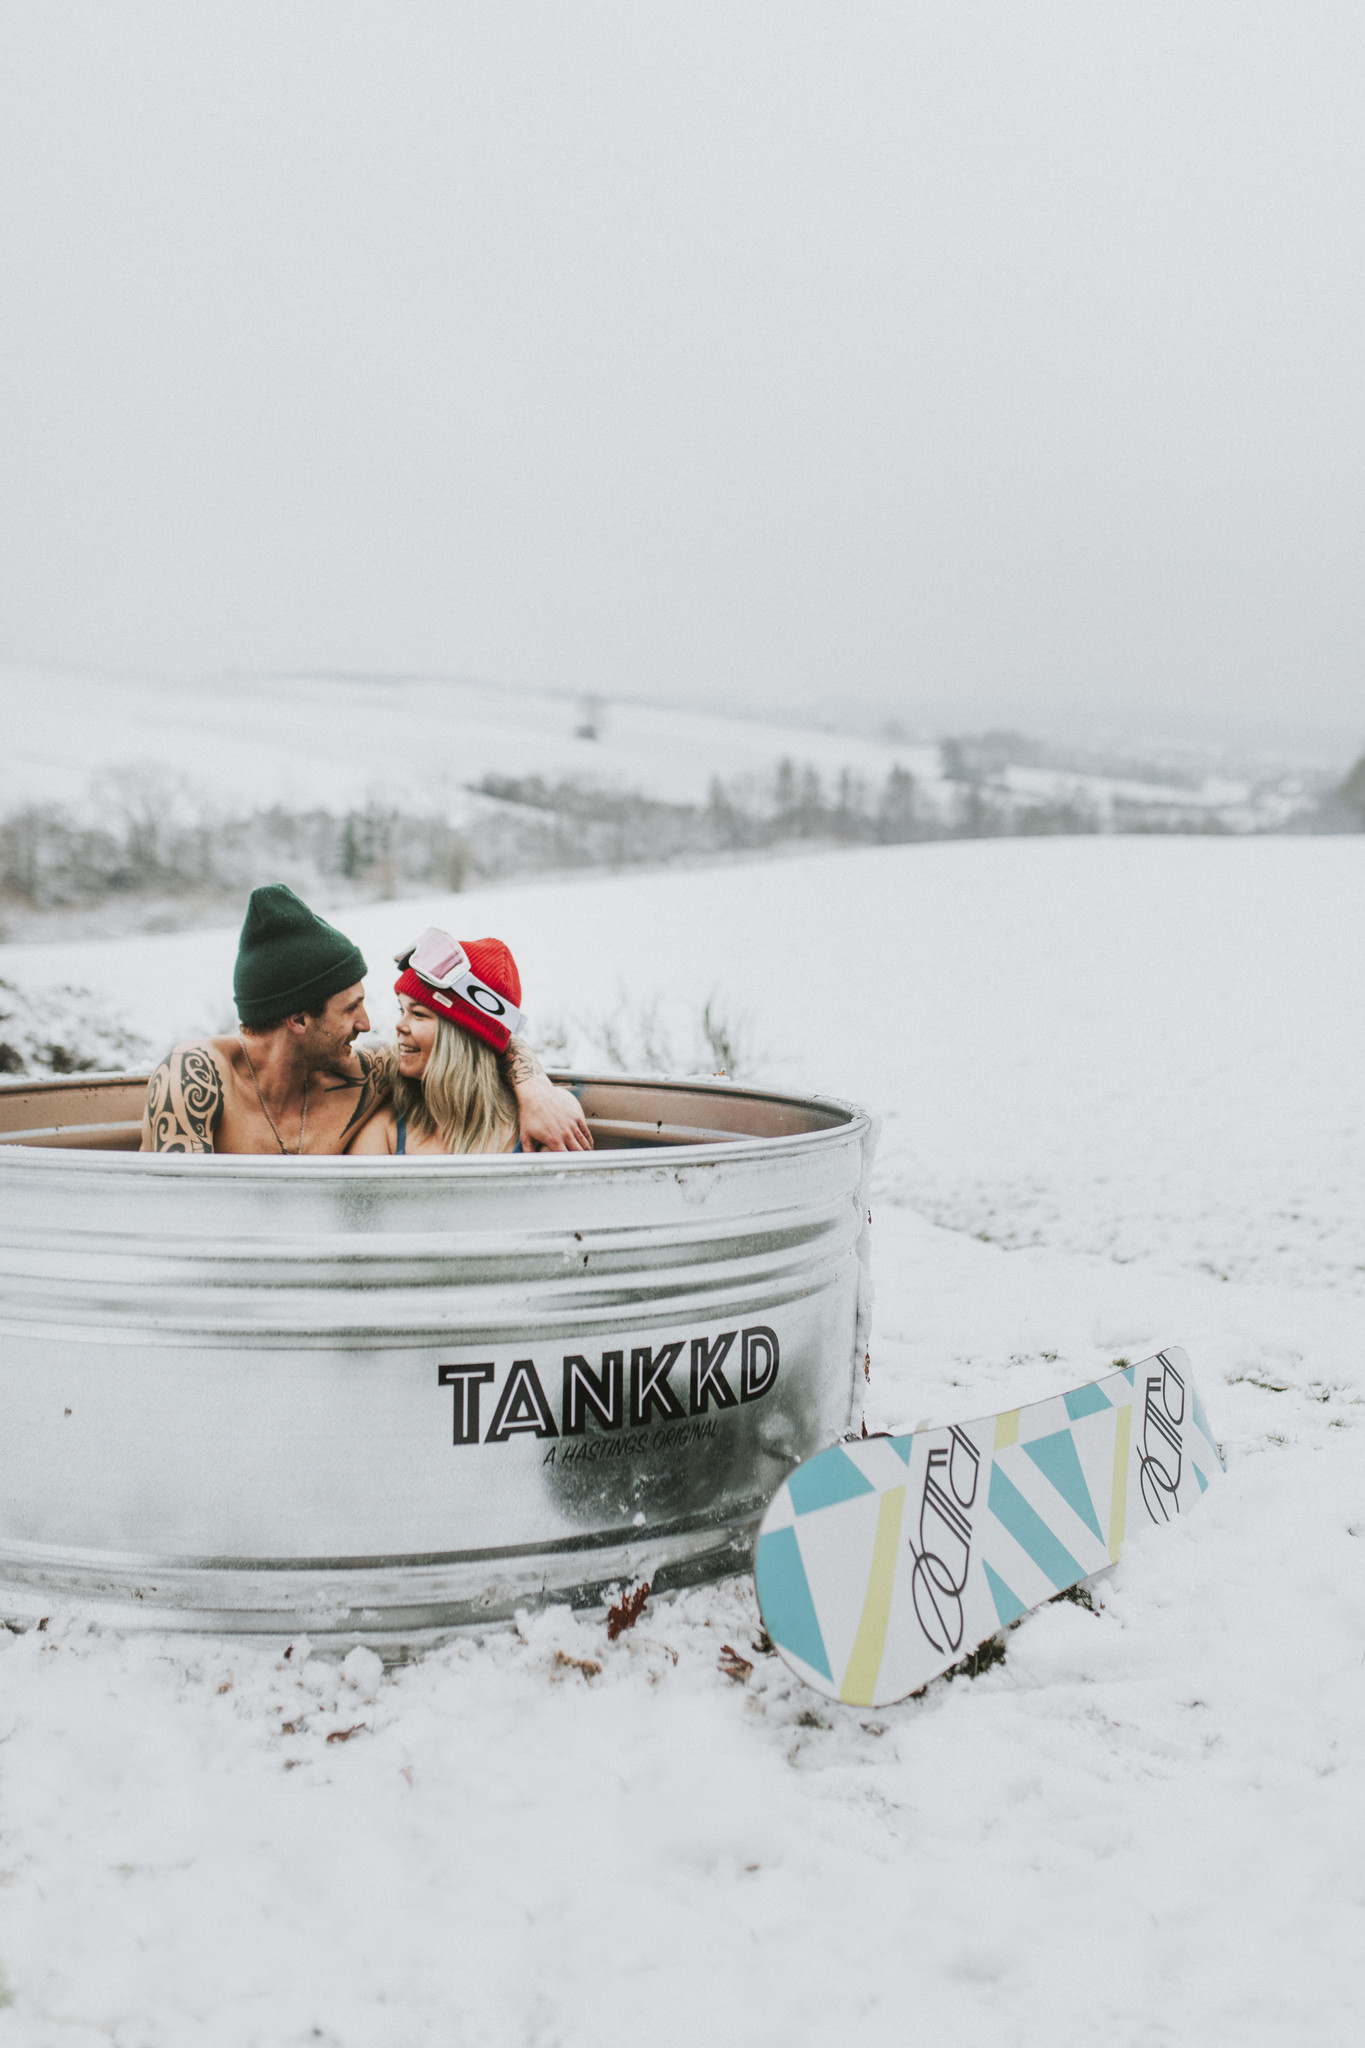 Tankkd hot tub paque ronde-10